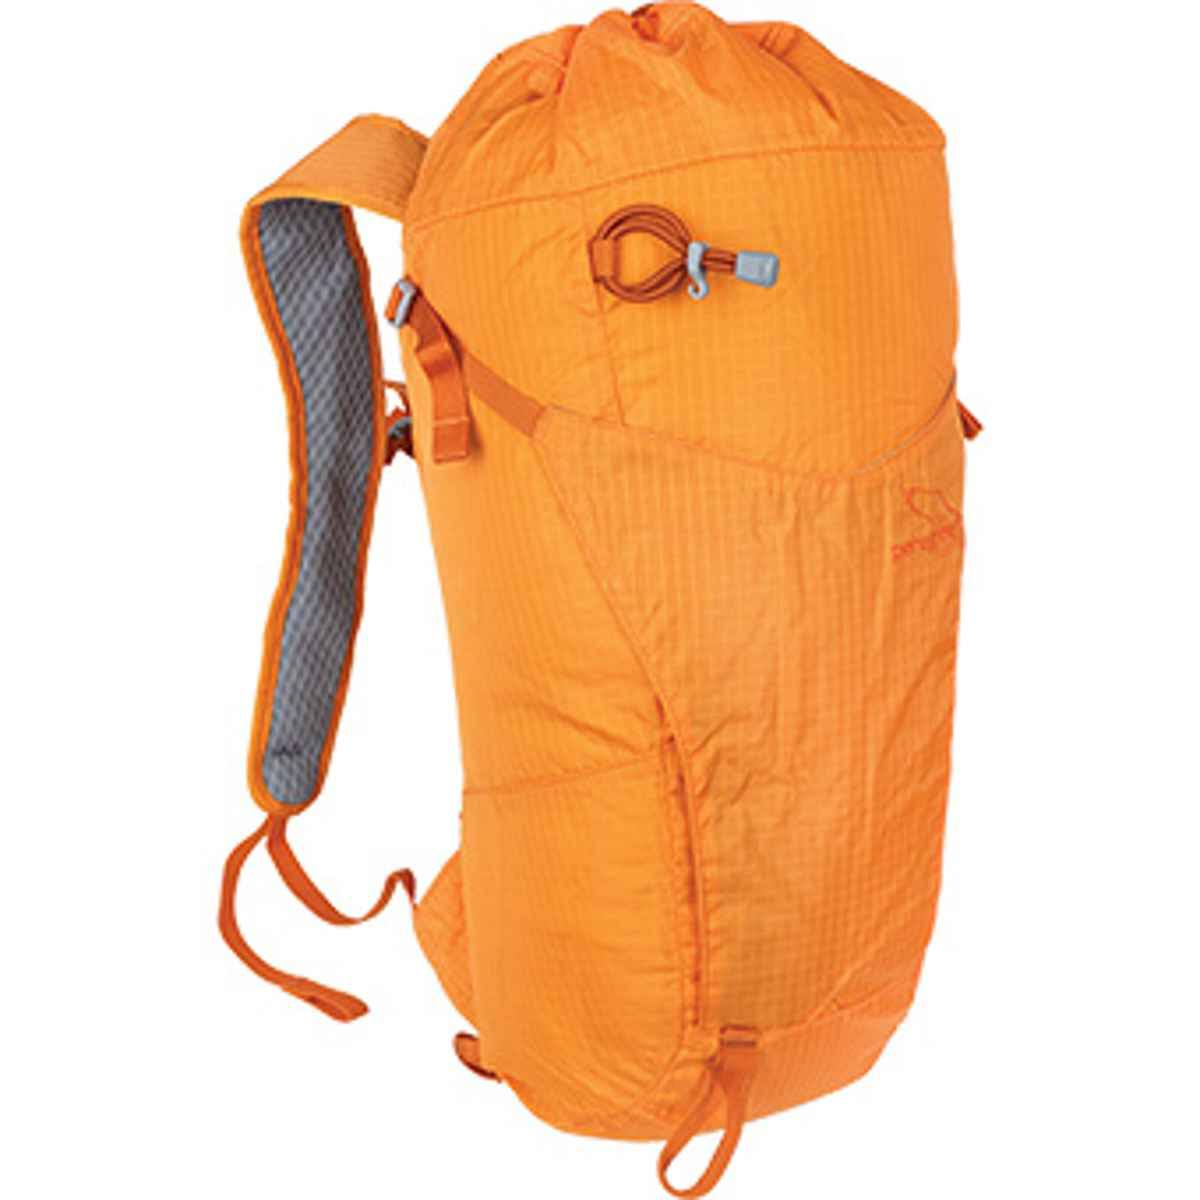 Peregrine 580287 Flight 18 Plus Sunset Backpack Orange